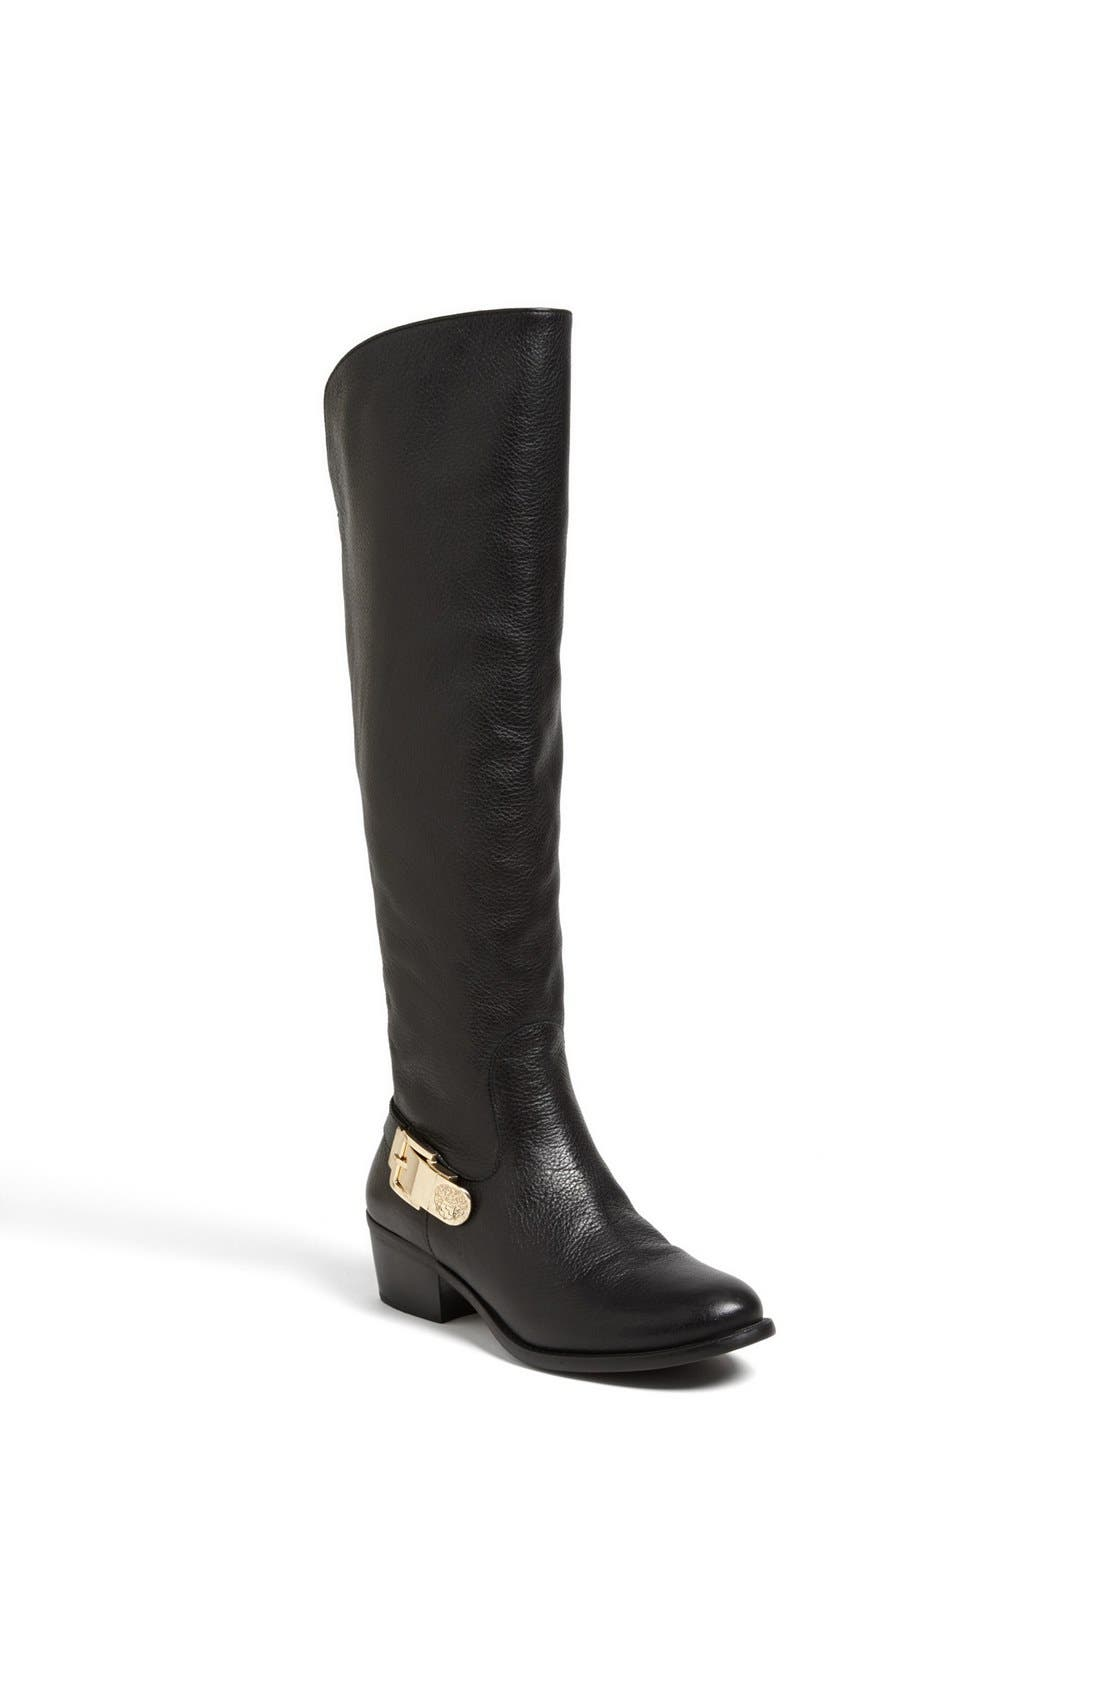 Alternate Image 1 Selected - Vince Camuto 'Bedina' Over the Knee Boot